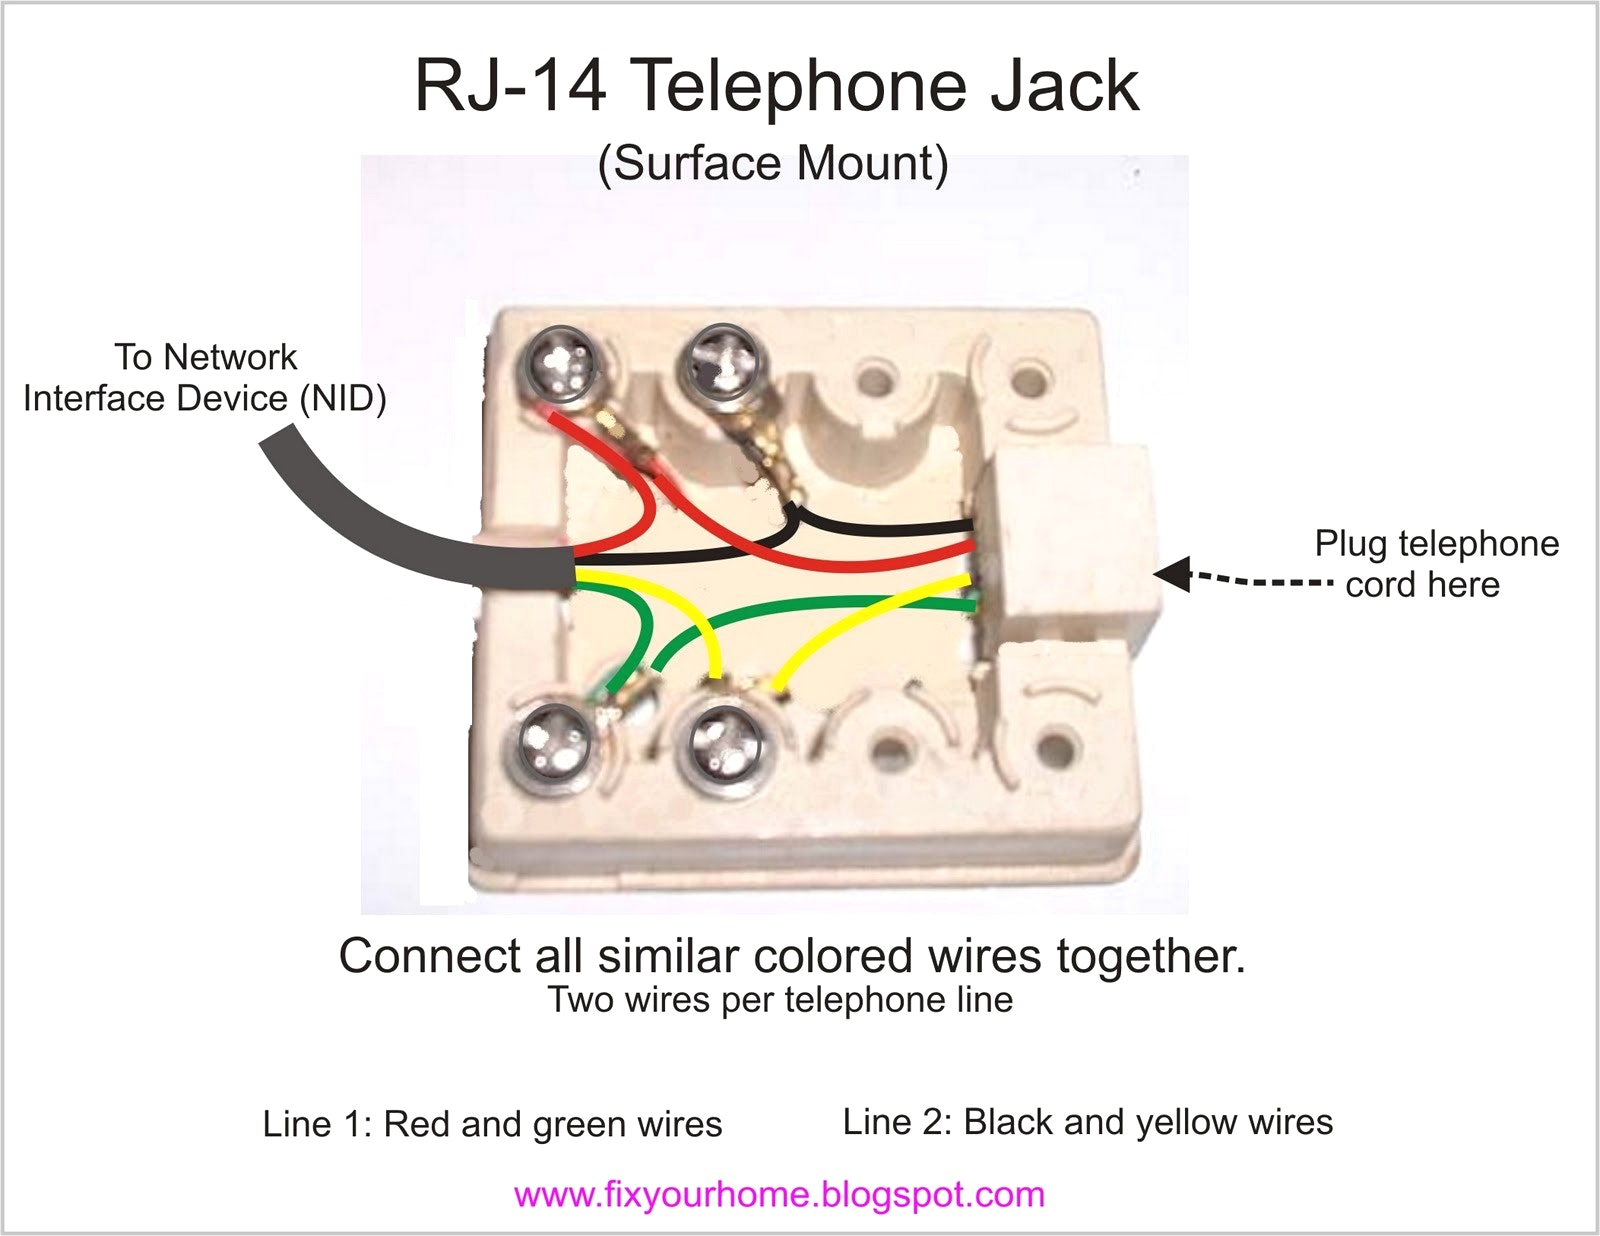 Phone Jack Wiring Diagram - Wiring Solution 2018 - Phone Jack Wiring Diagram